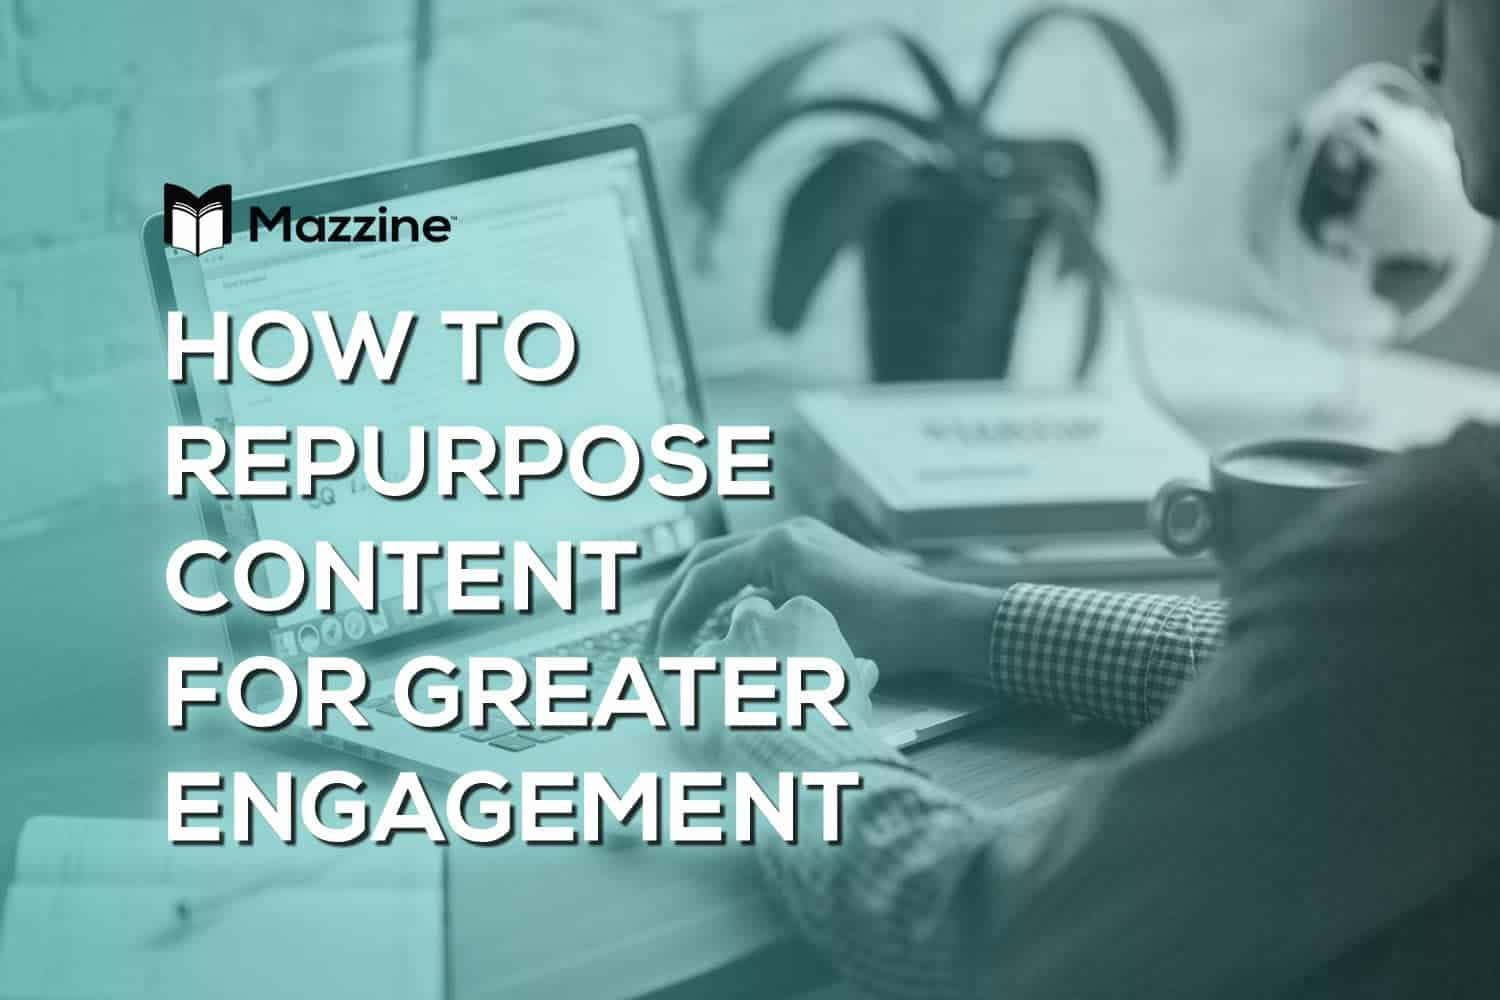 How to Repurpose Content for Greater Engagement